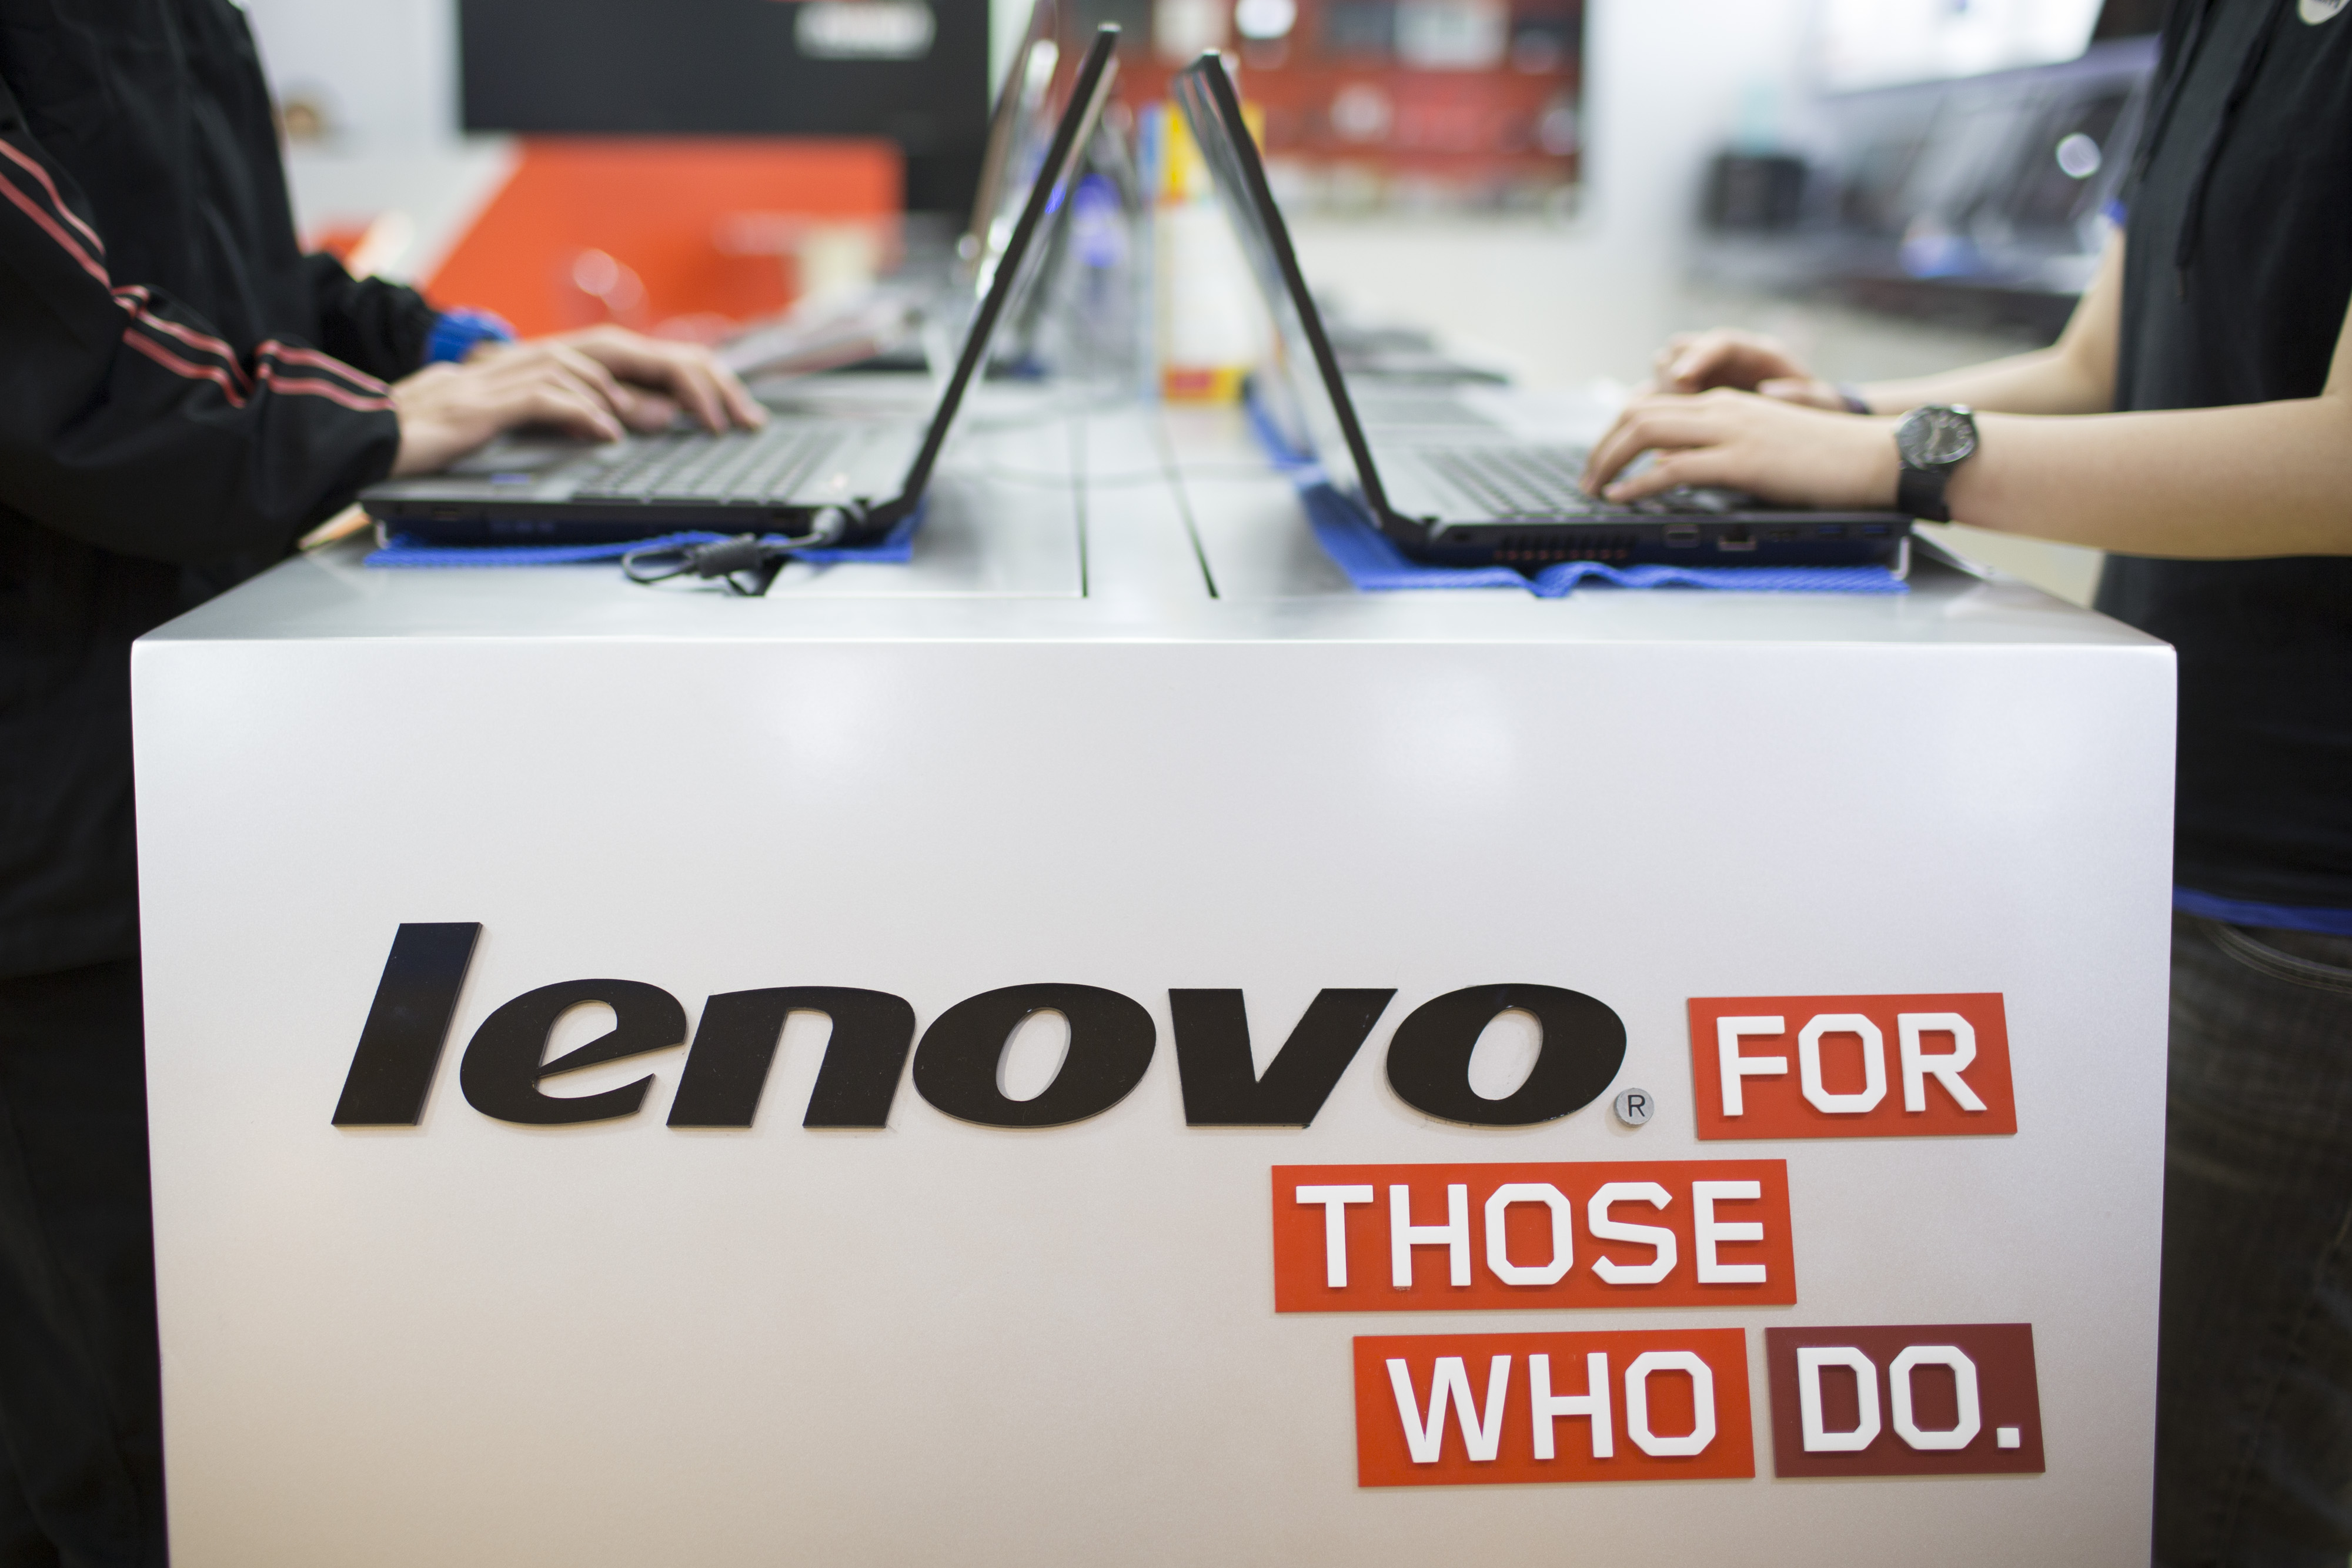 Lenovo Group Ltd. signage is displayed near laptops in an arranged photograph at a Lenovo store in the Yuen Long district of Hong Kong on May 23, 2014.